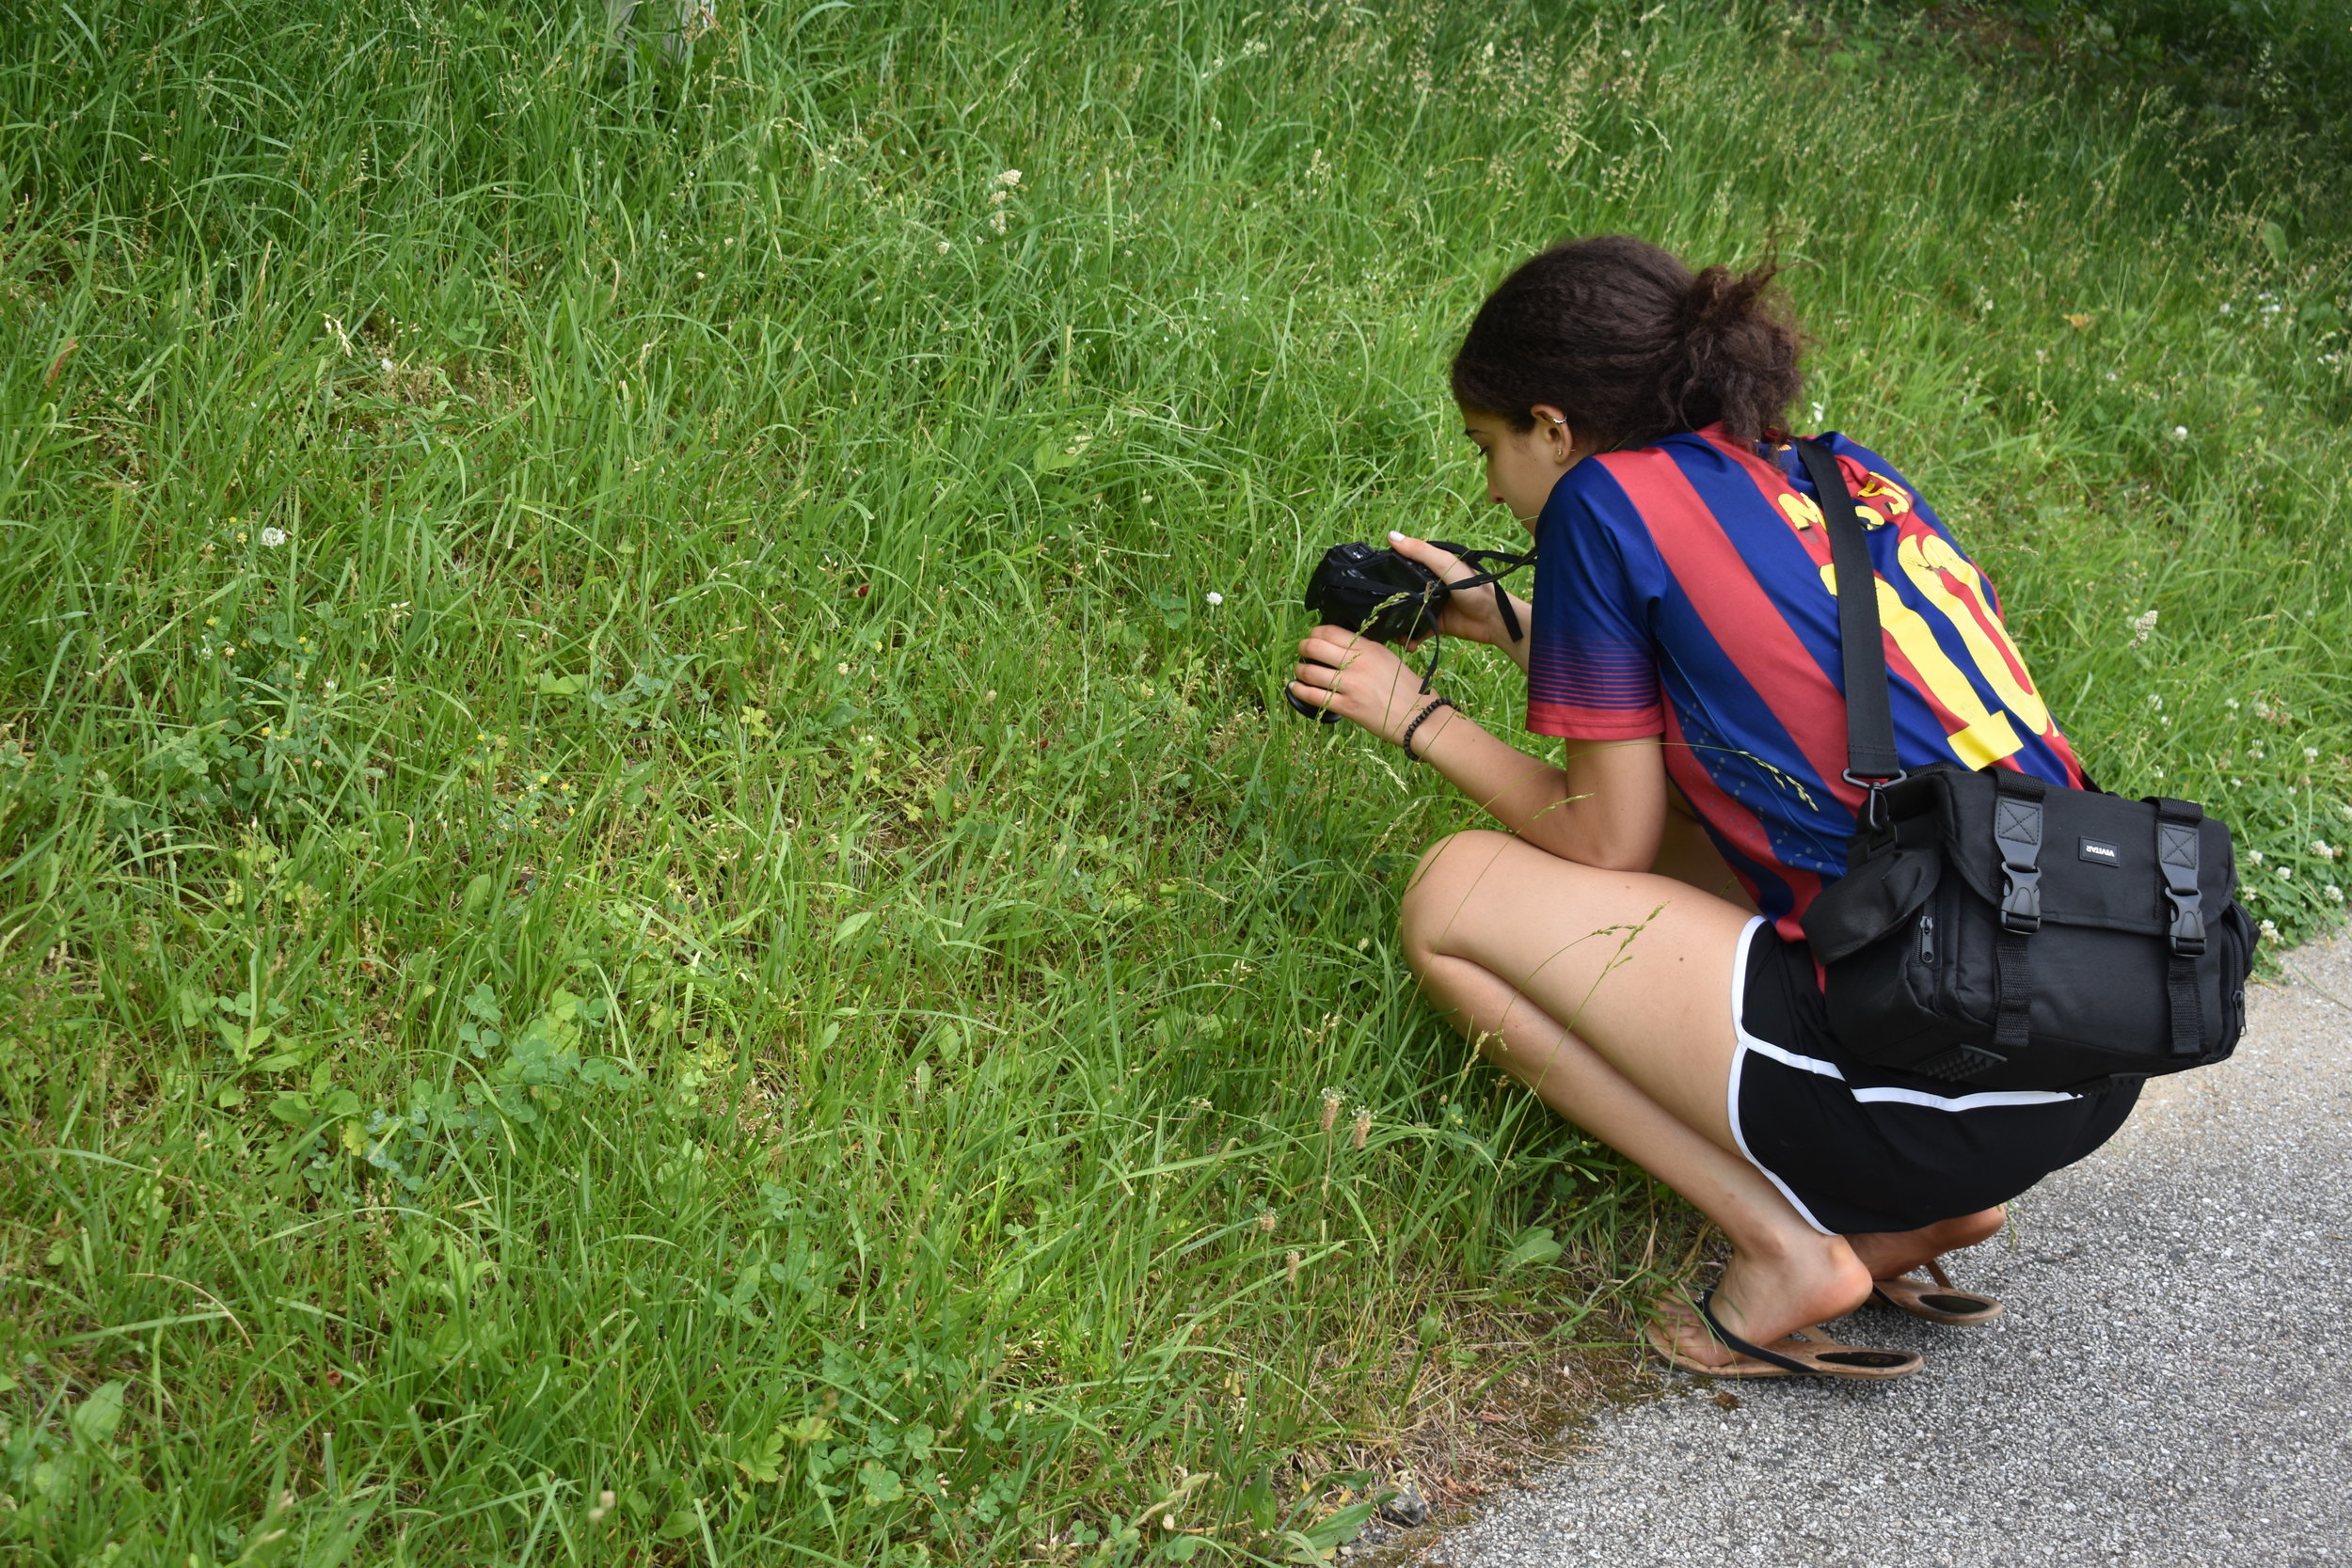 Investigating Our Natural Landscape Through Photography